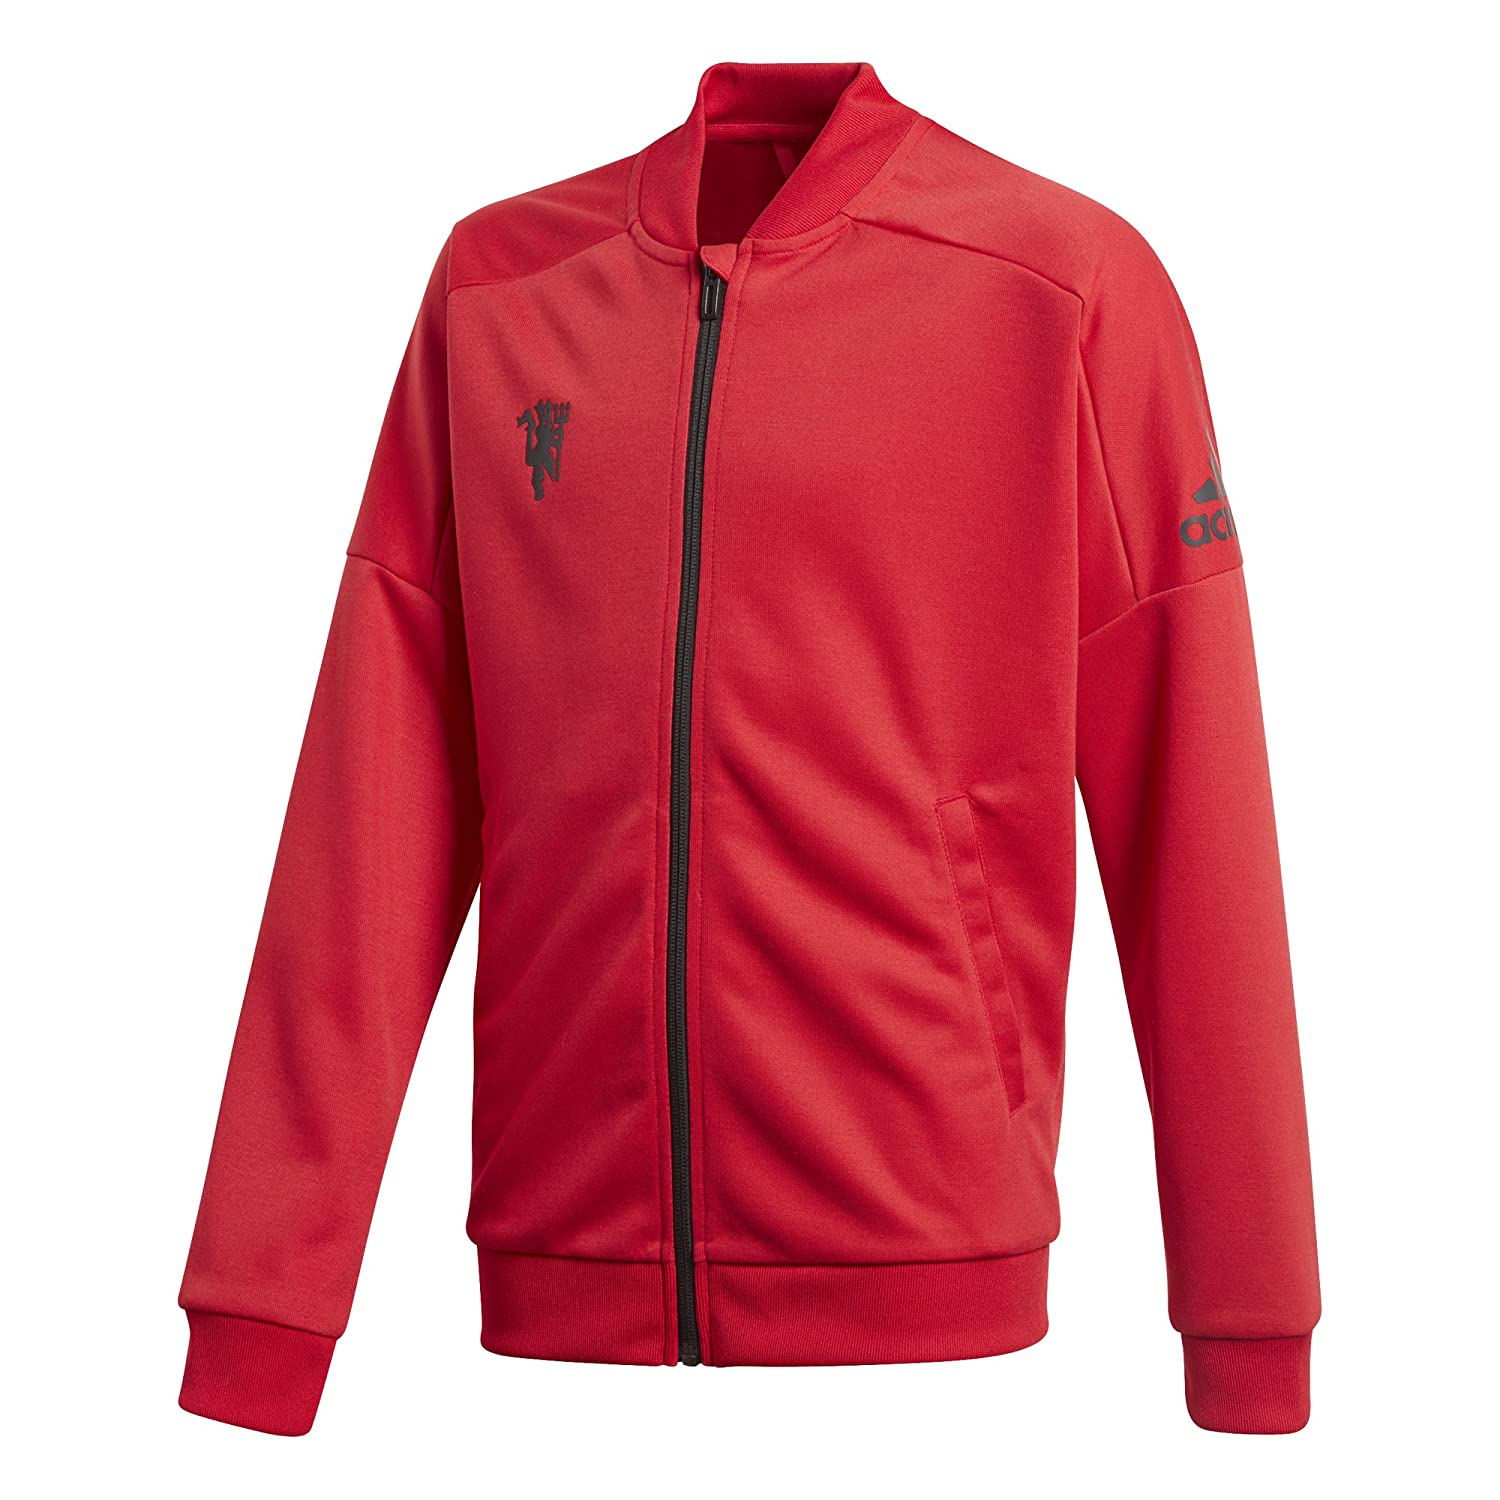 Adidas Kinder Manchester United Trainingsjacke